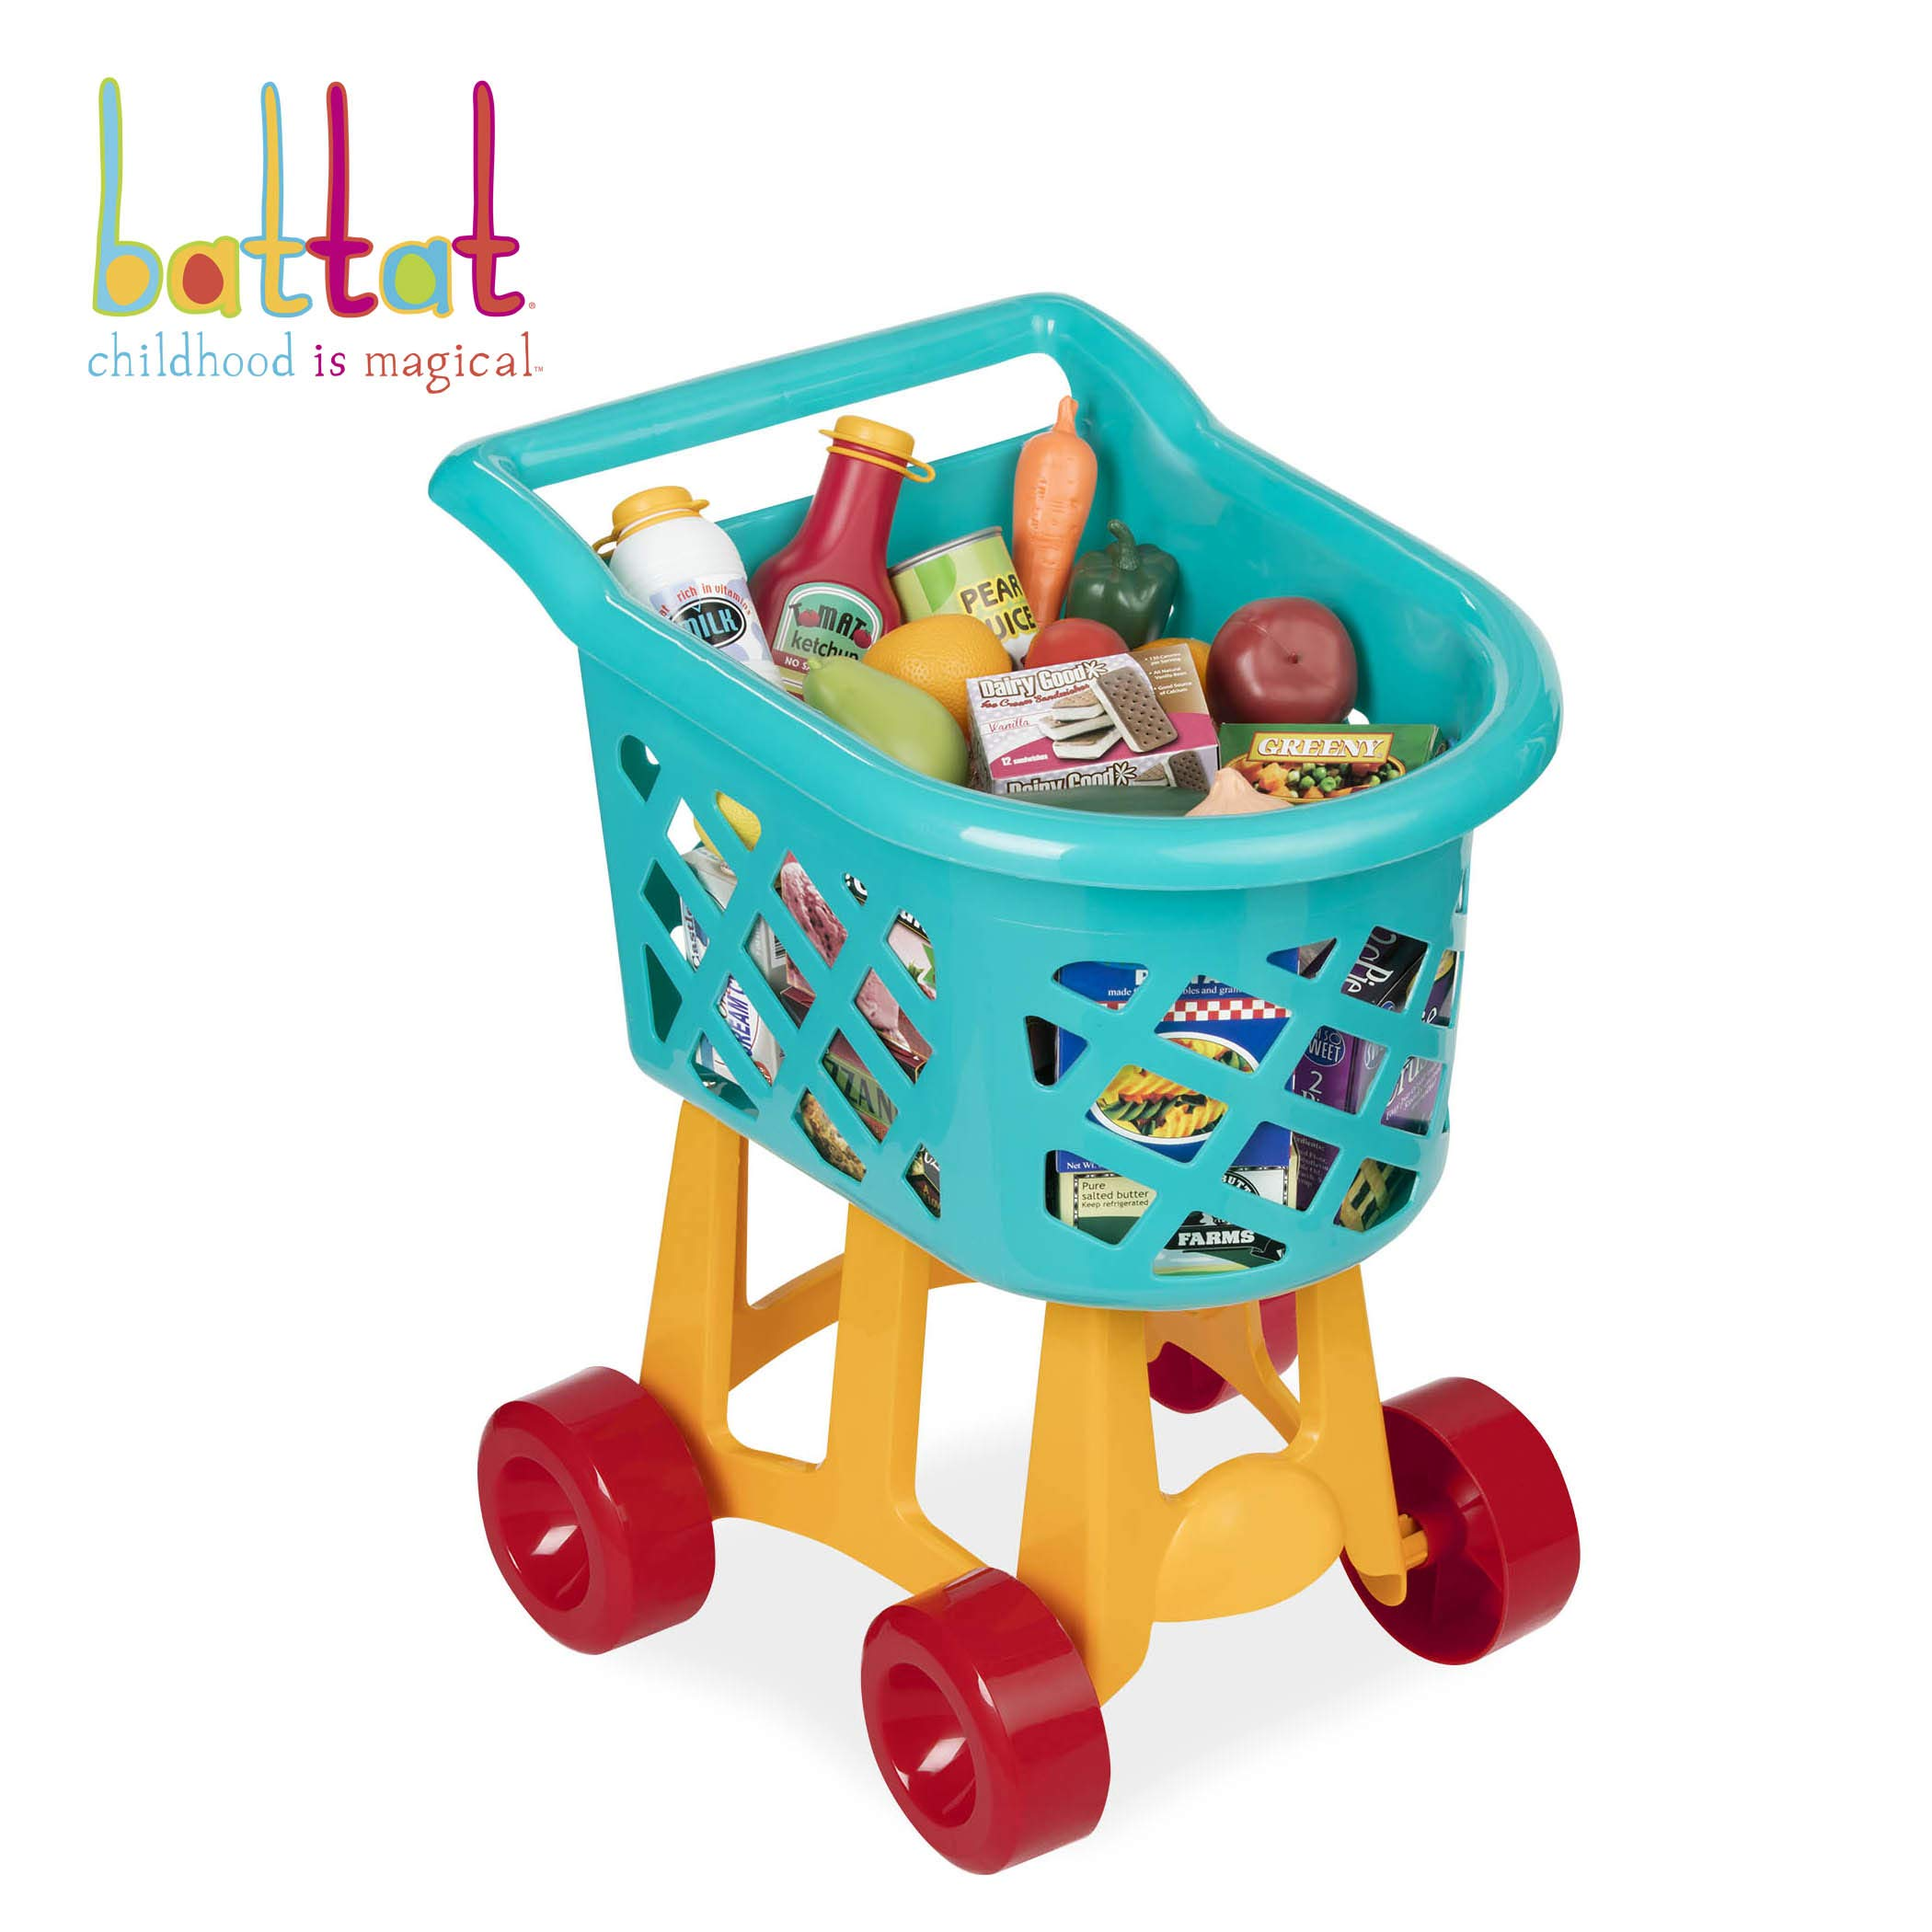 Battat Grocery Cart - Deluxe Toy Shopping Cart with Pretend Play Food Accessories for Kids 3+ (23-Pieces)